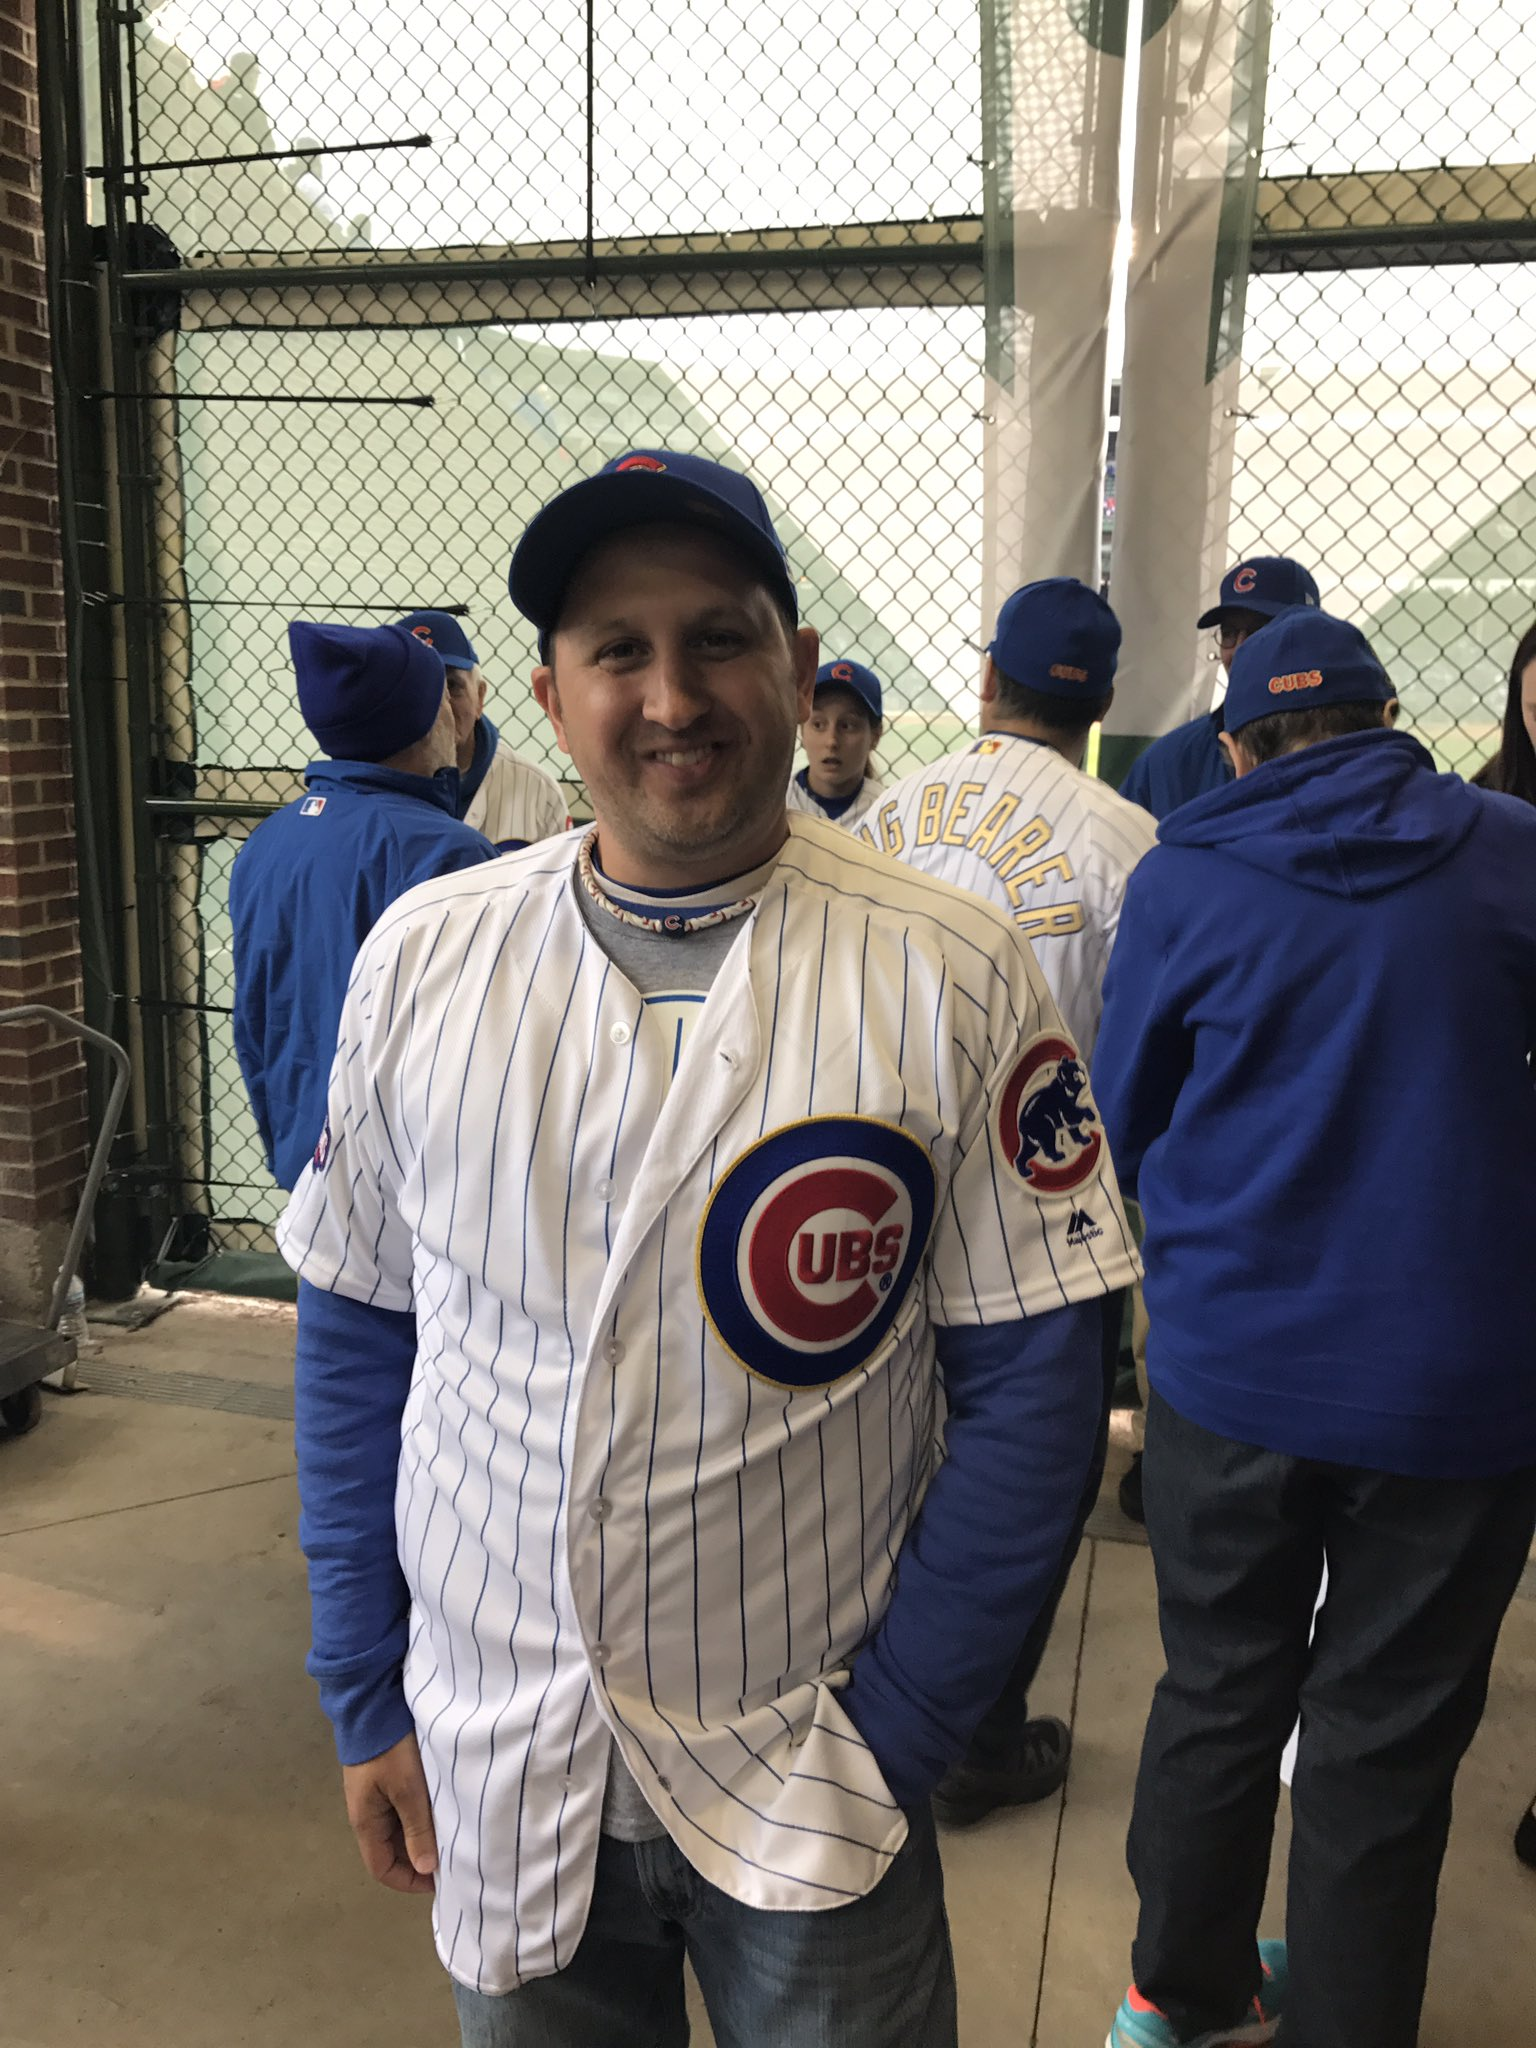 How am I looking?! #Cubs #RingCeremony #cubsringbearer https://t.co/Li9GMxUevd